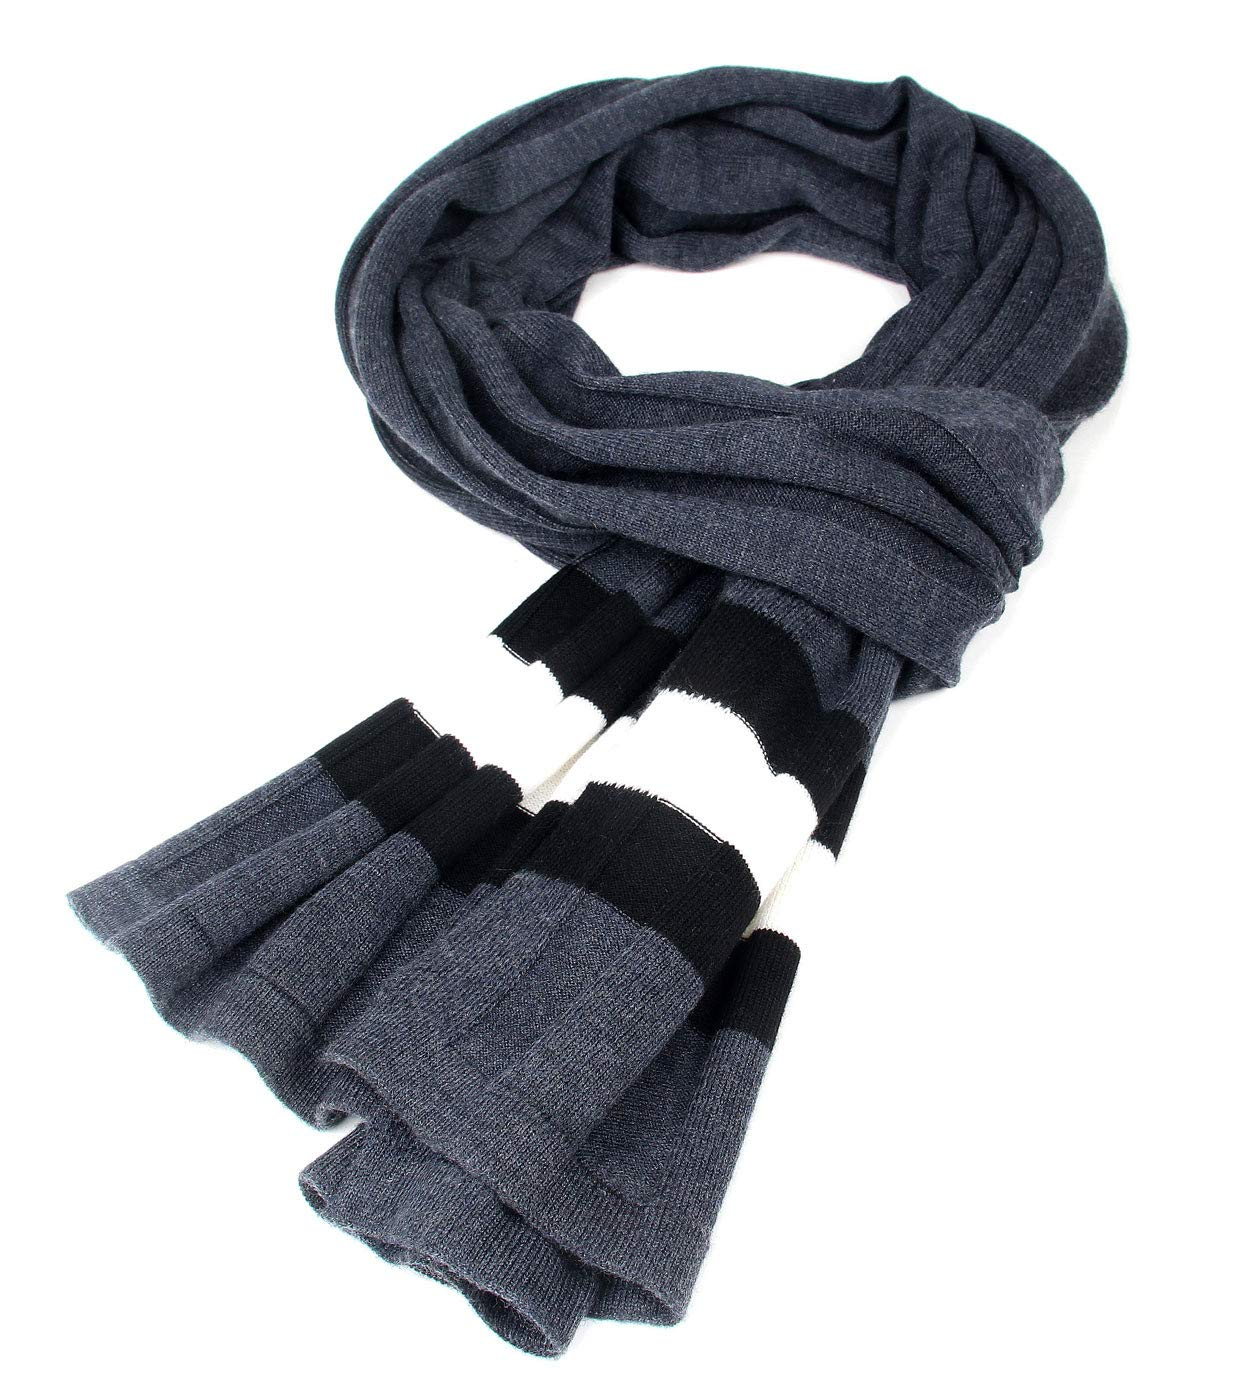 Men Plain Thermal Scarf Knitted Striped Winter Scarves One Size Leisure Business Men Warm Neckerchief Gray by Panegy (Image #6)